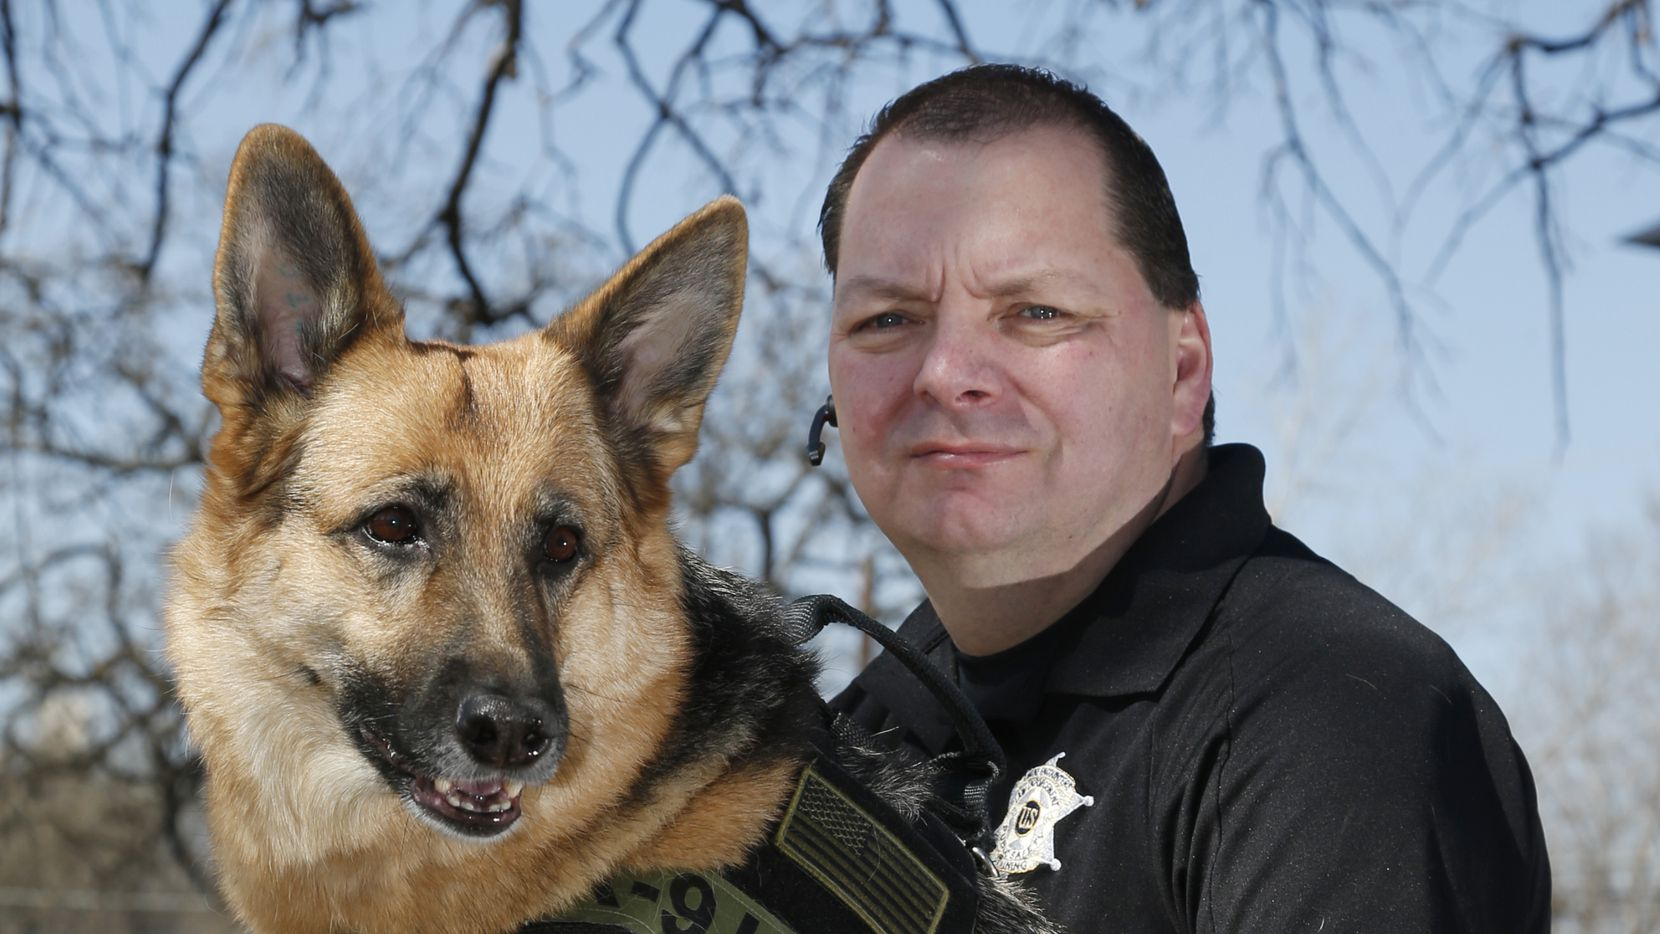 Jim Osorio, of Canine Encounters Law Enforcement Training, with his German Shepherd, Coral, pictured in Arlington.